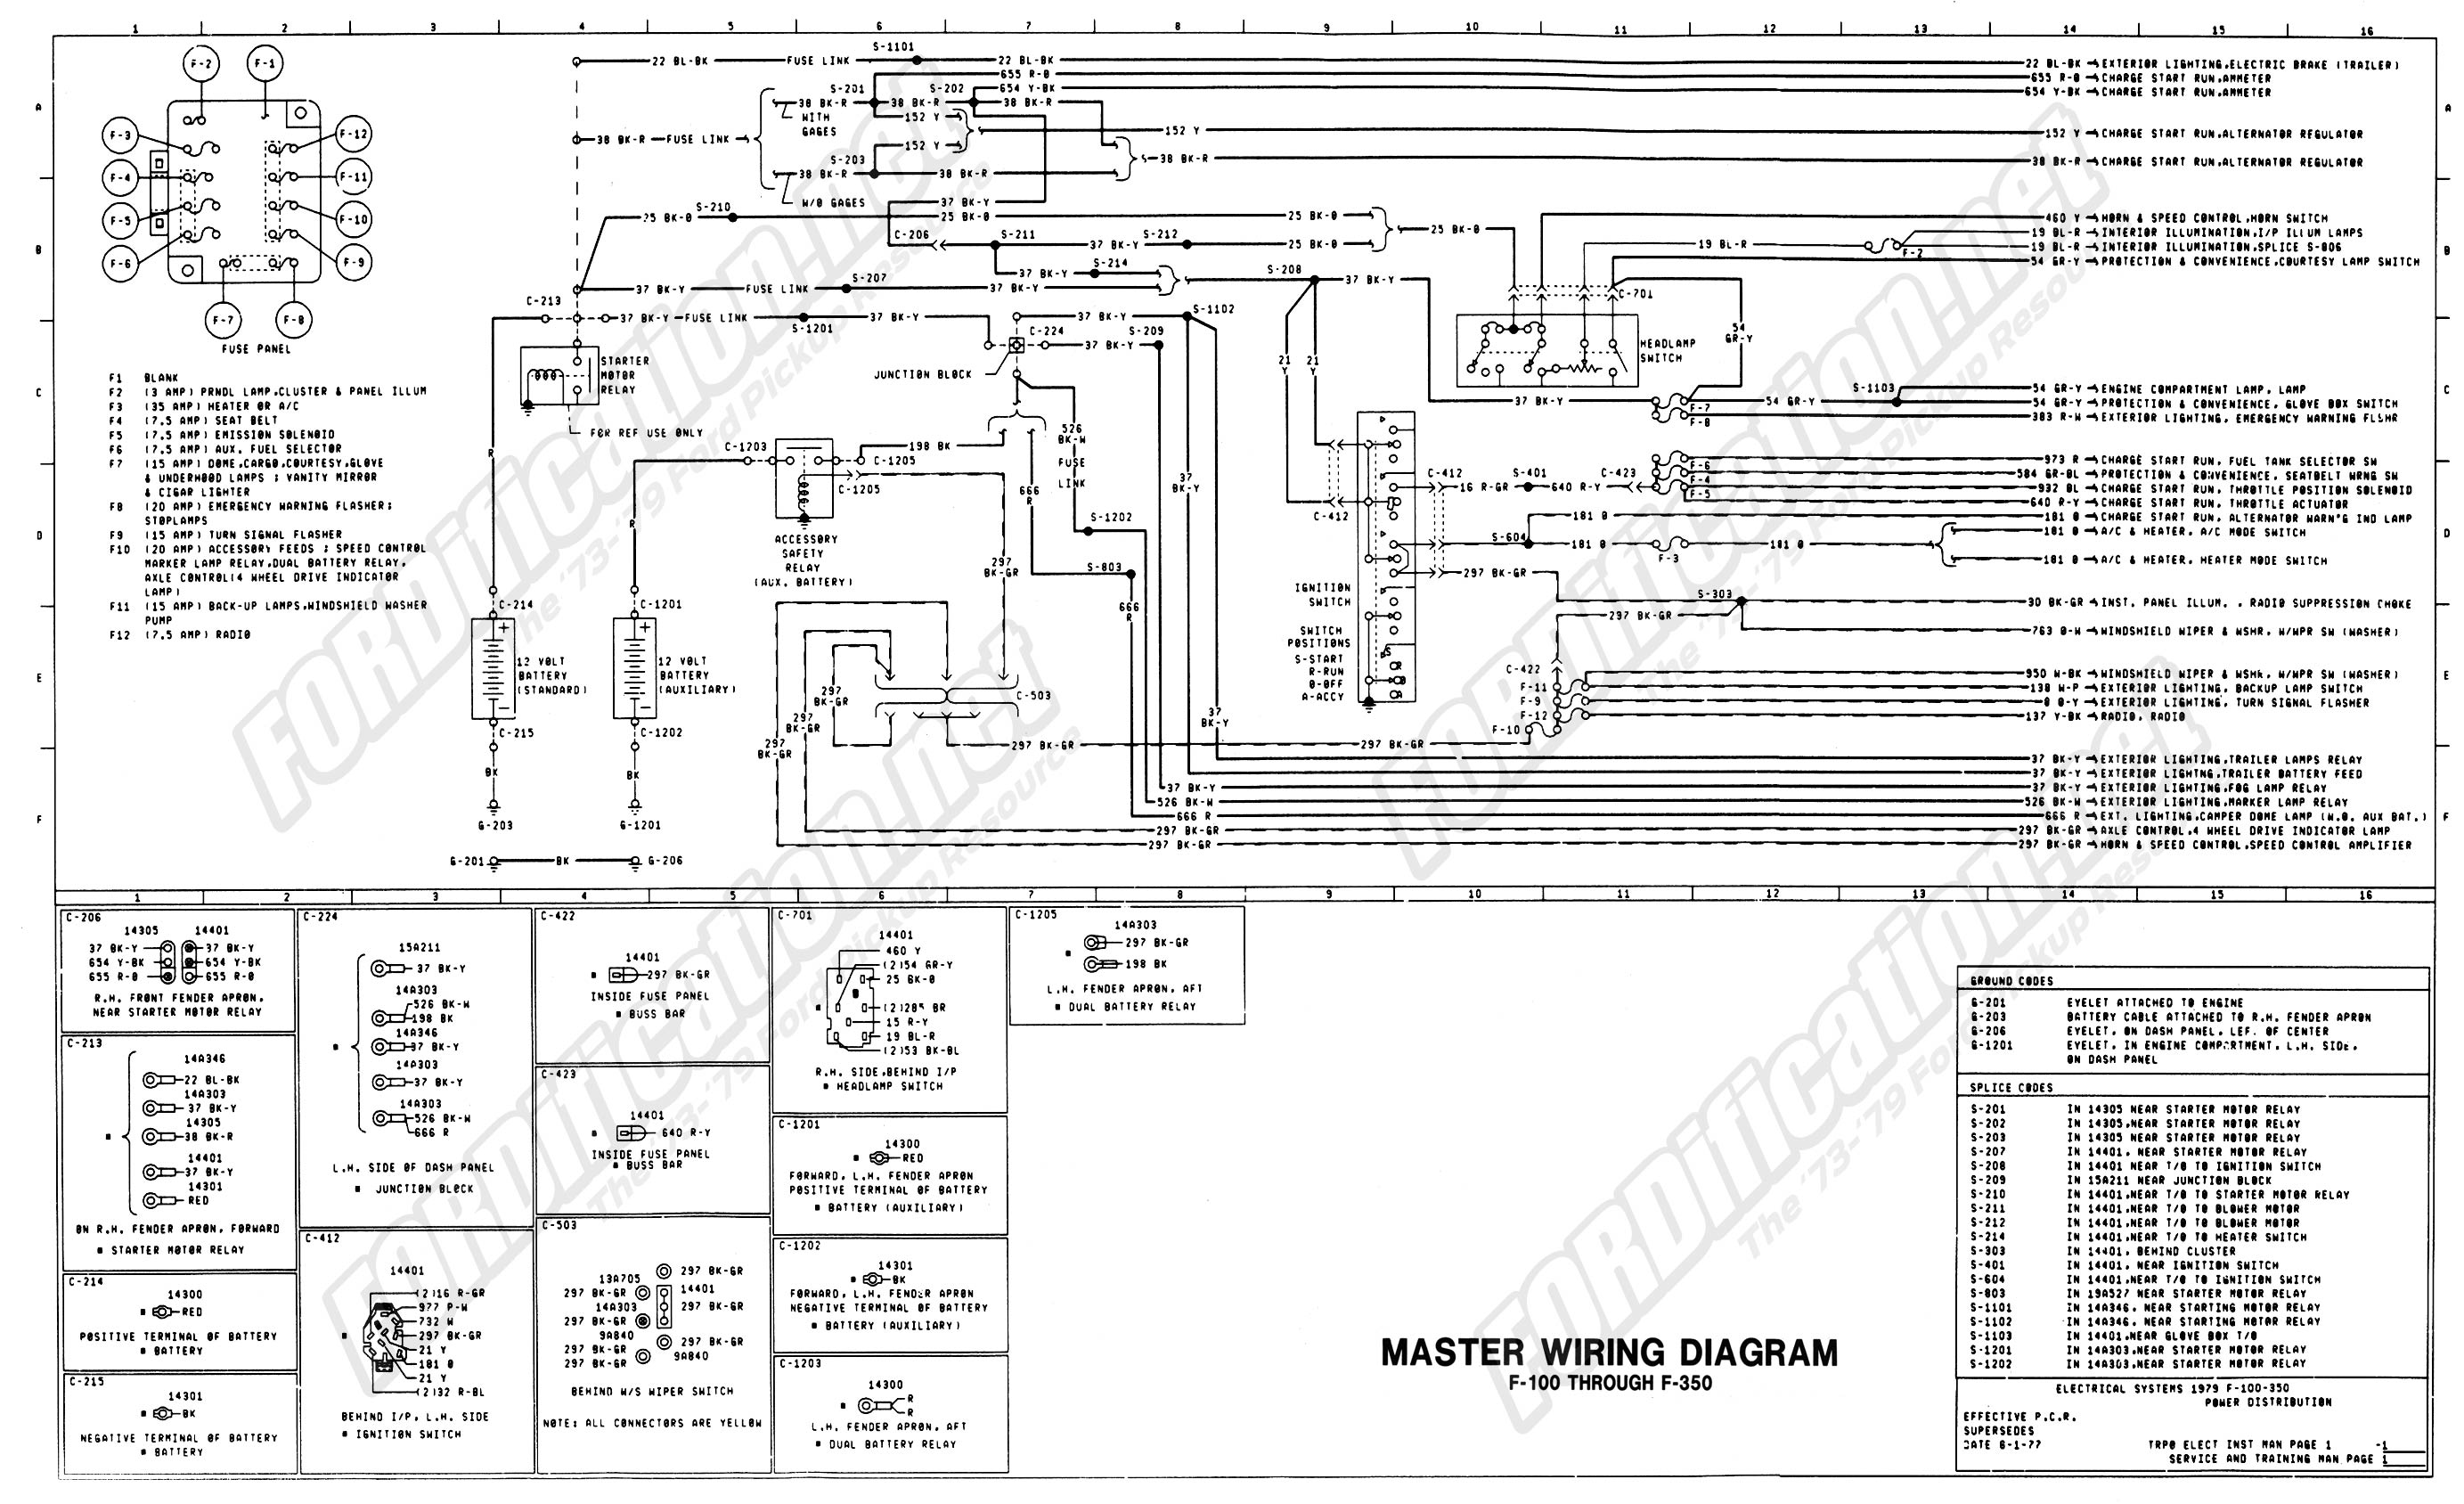 1973 1979 Ford Truck Wiring Diagrams & Schematics Fordification Net Ford  Turn Signal Wiring Diagram 79 F150 Wiring Diagram